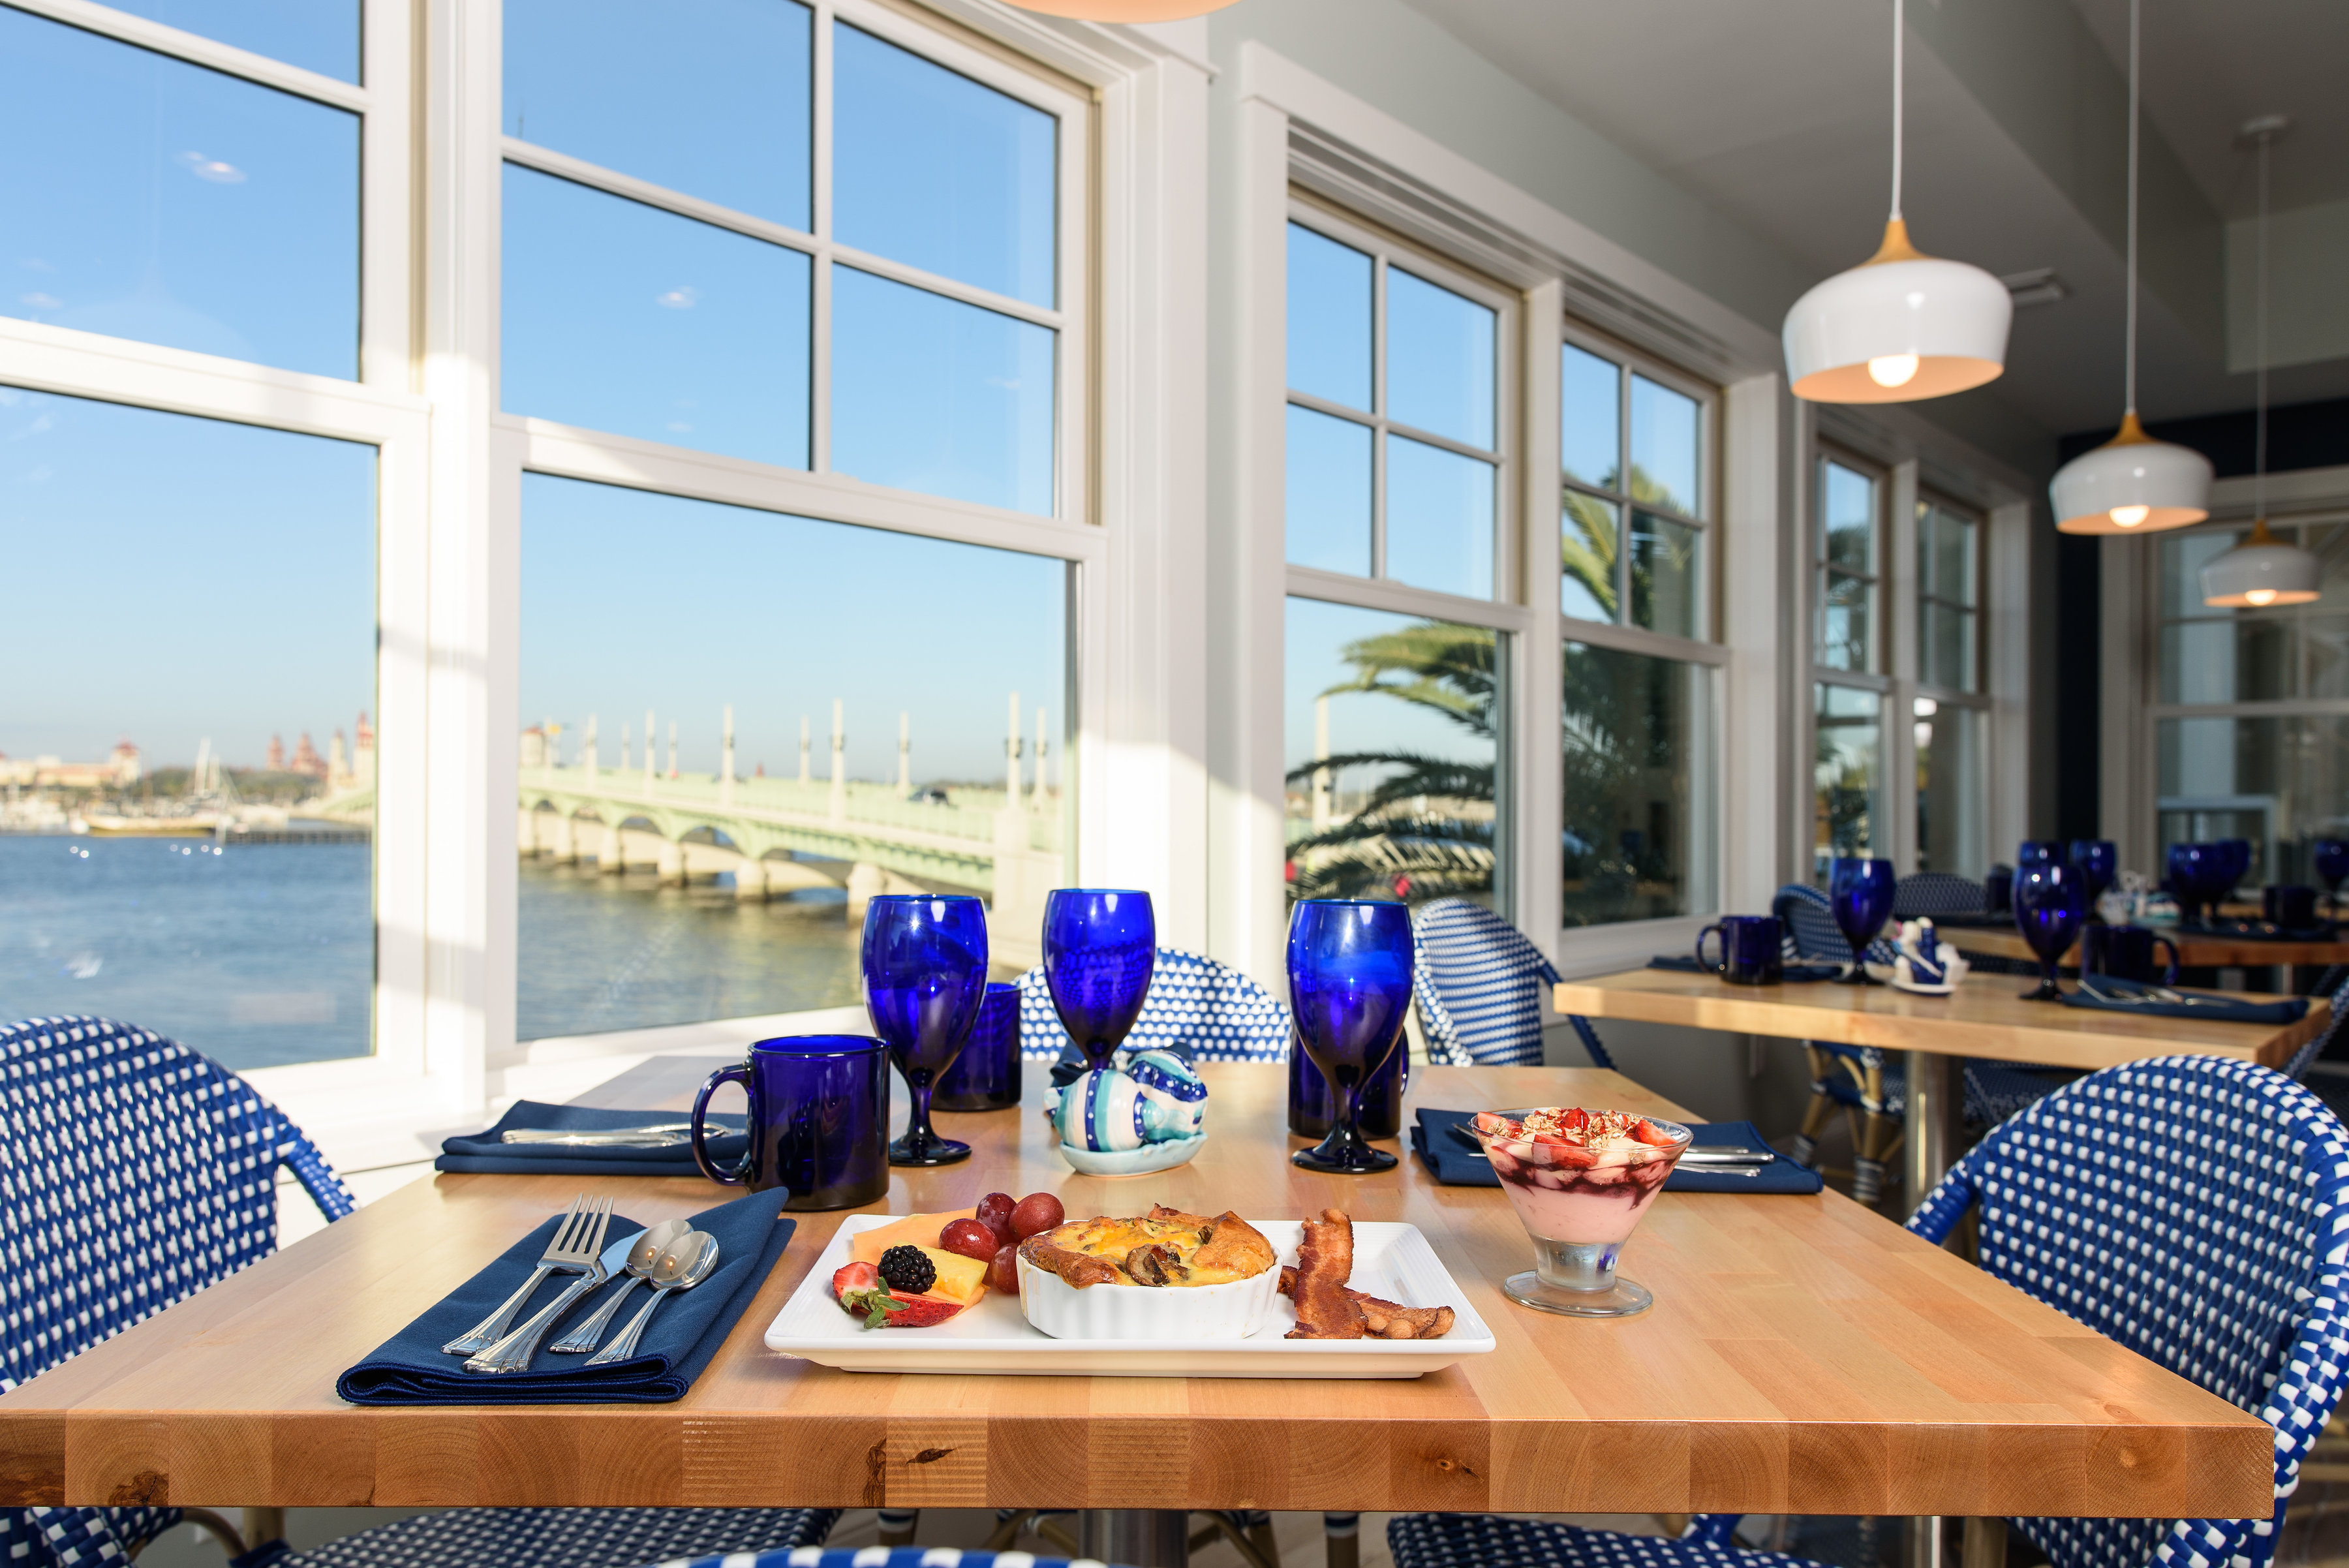 Breakfast table in captains table with view of bay int the background